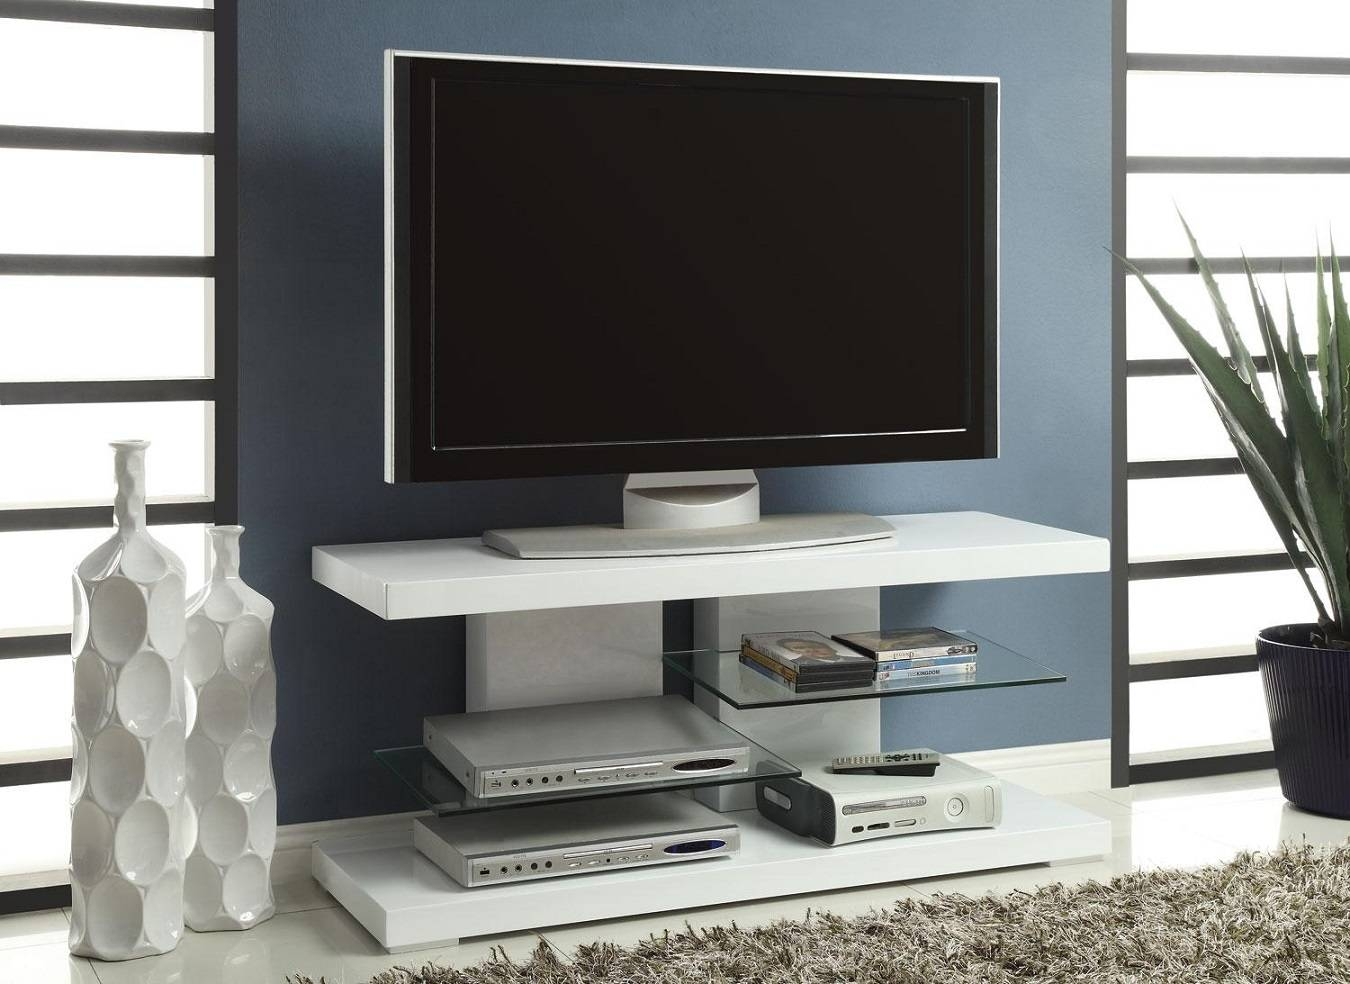 White Painted Plywood Flat Screen Tv Stand With Tempered Glass with regard to Modern Tv Stands for Flat Screens (Image 15 of 15)